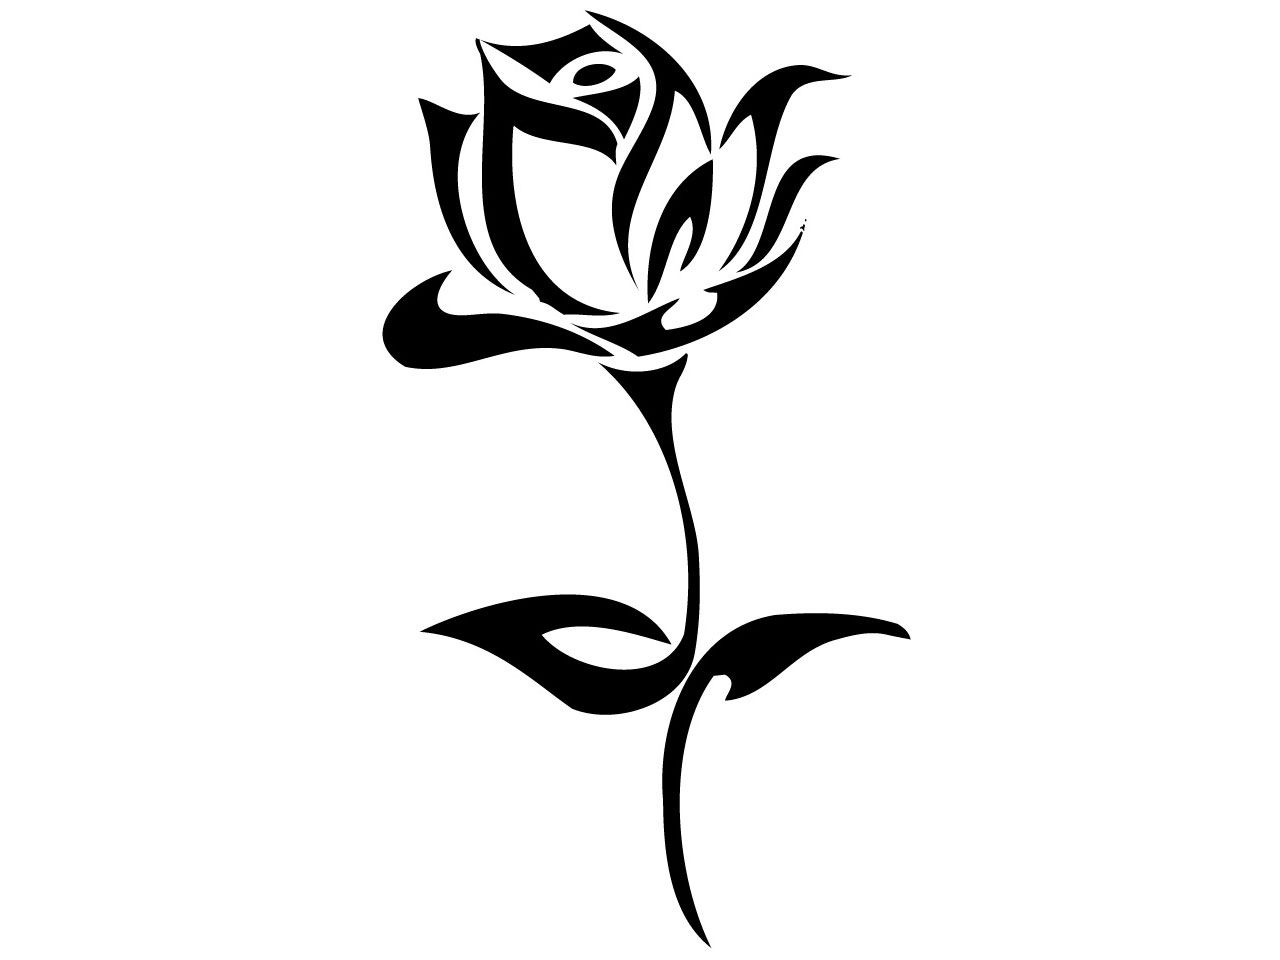 Tribal Rose Tattoo Design - Tattoo Ideas